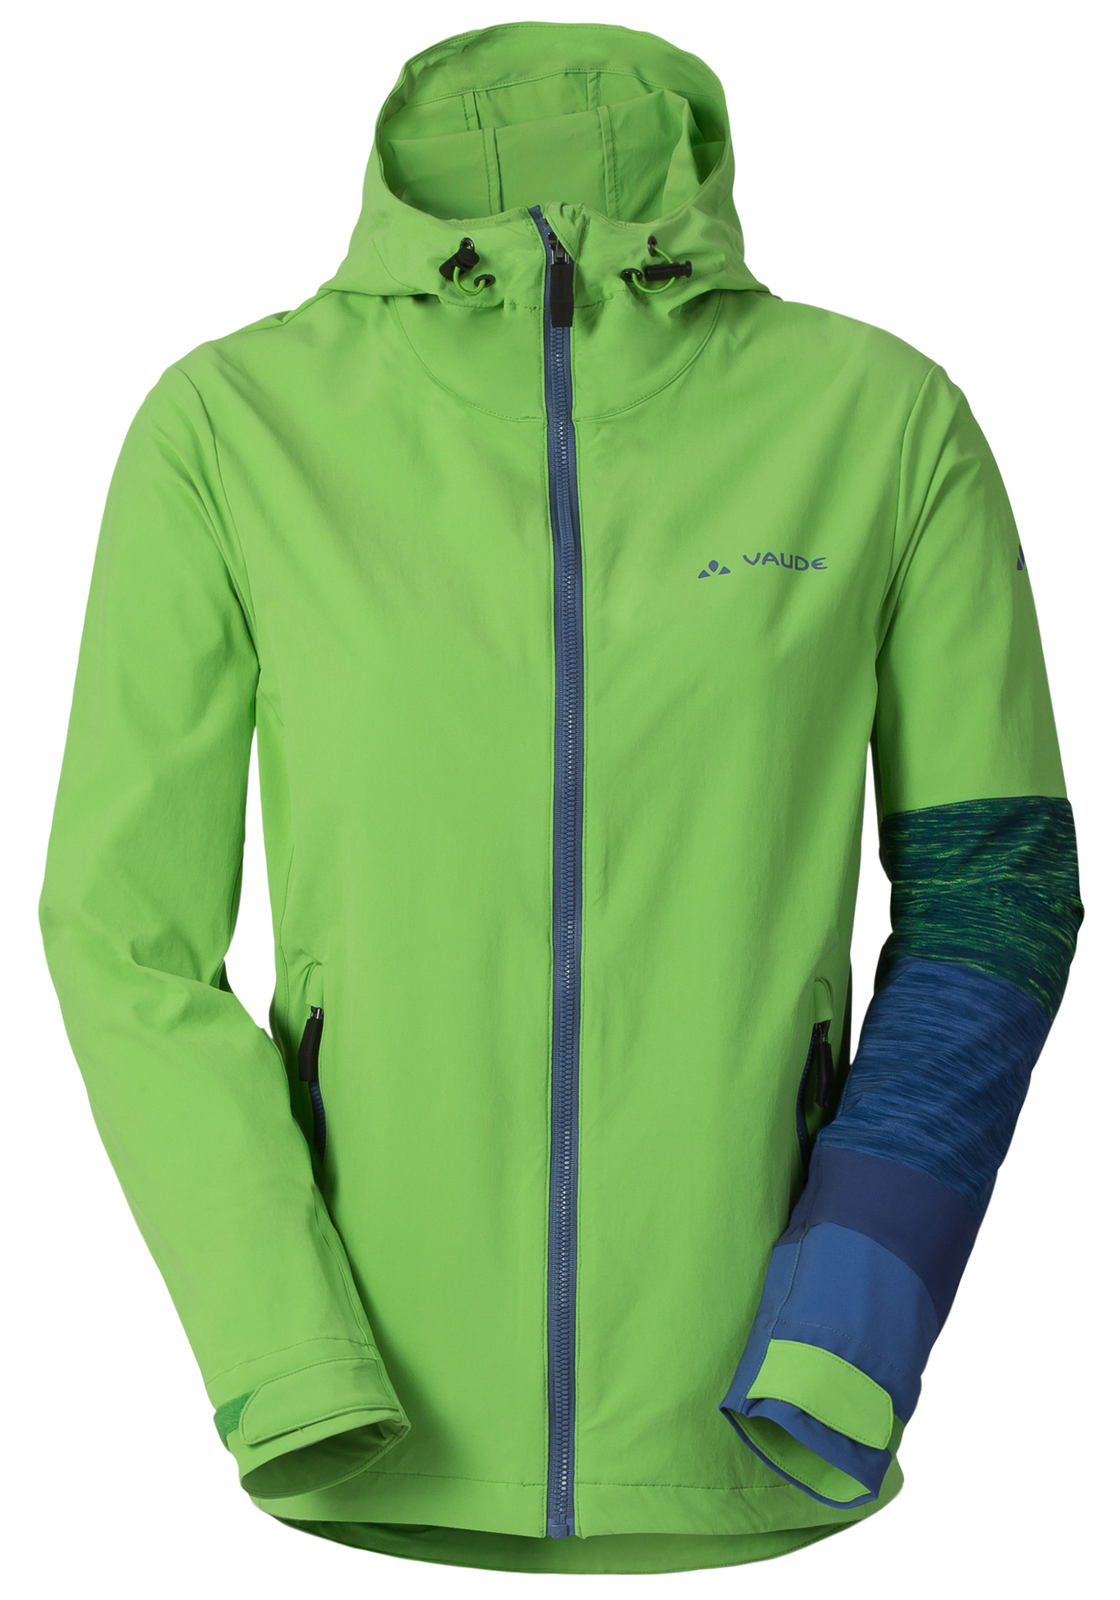 VAUDE Women´s Moab Jacket II apple Größe 40 - VAUDE Women´s Moab Jacket II apple Größe 40